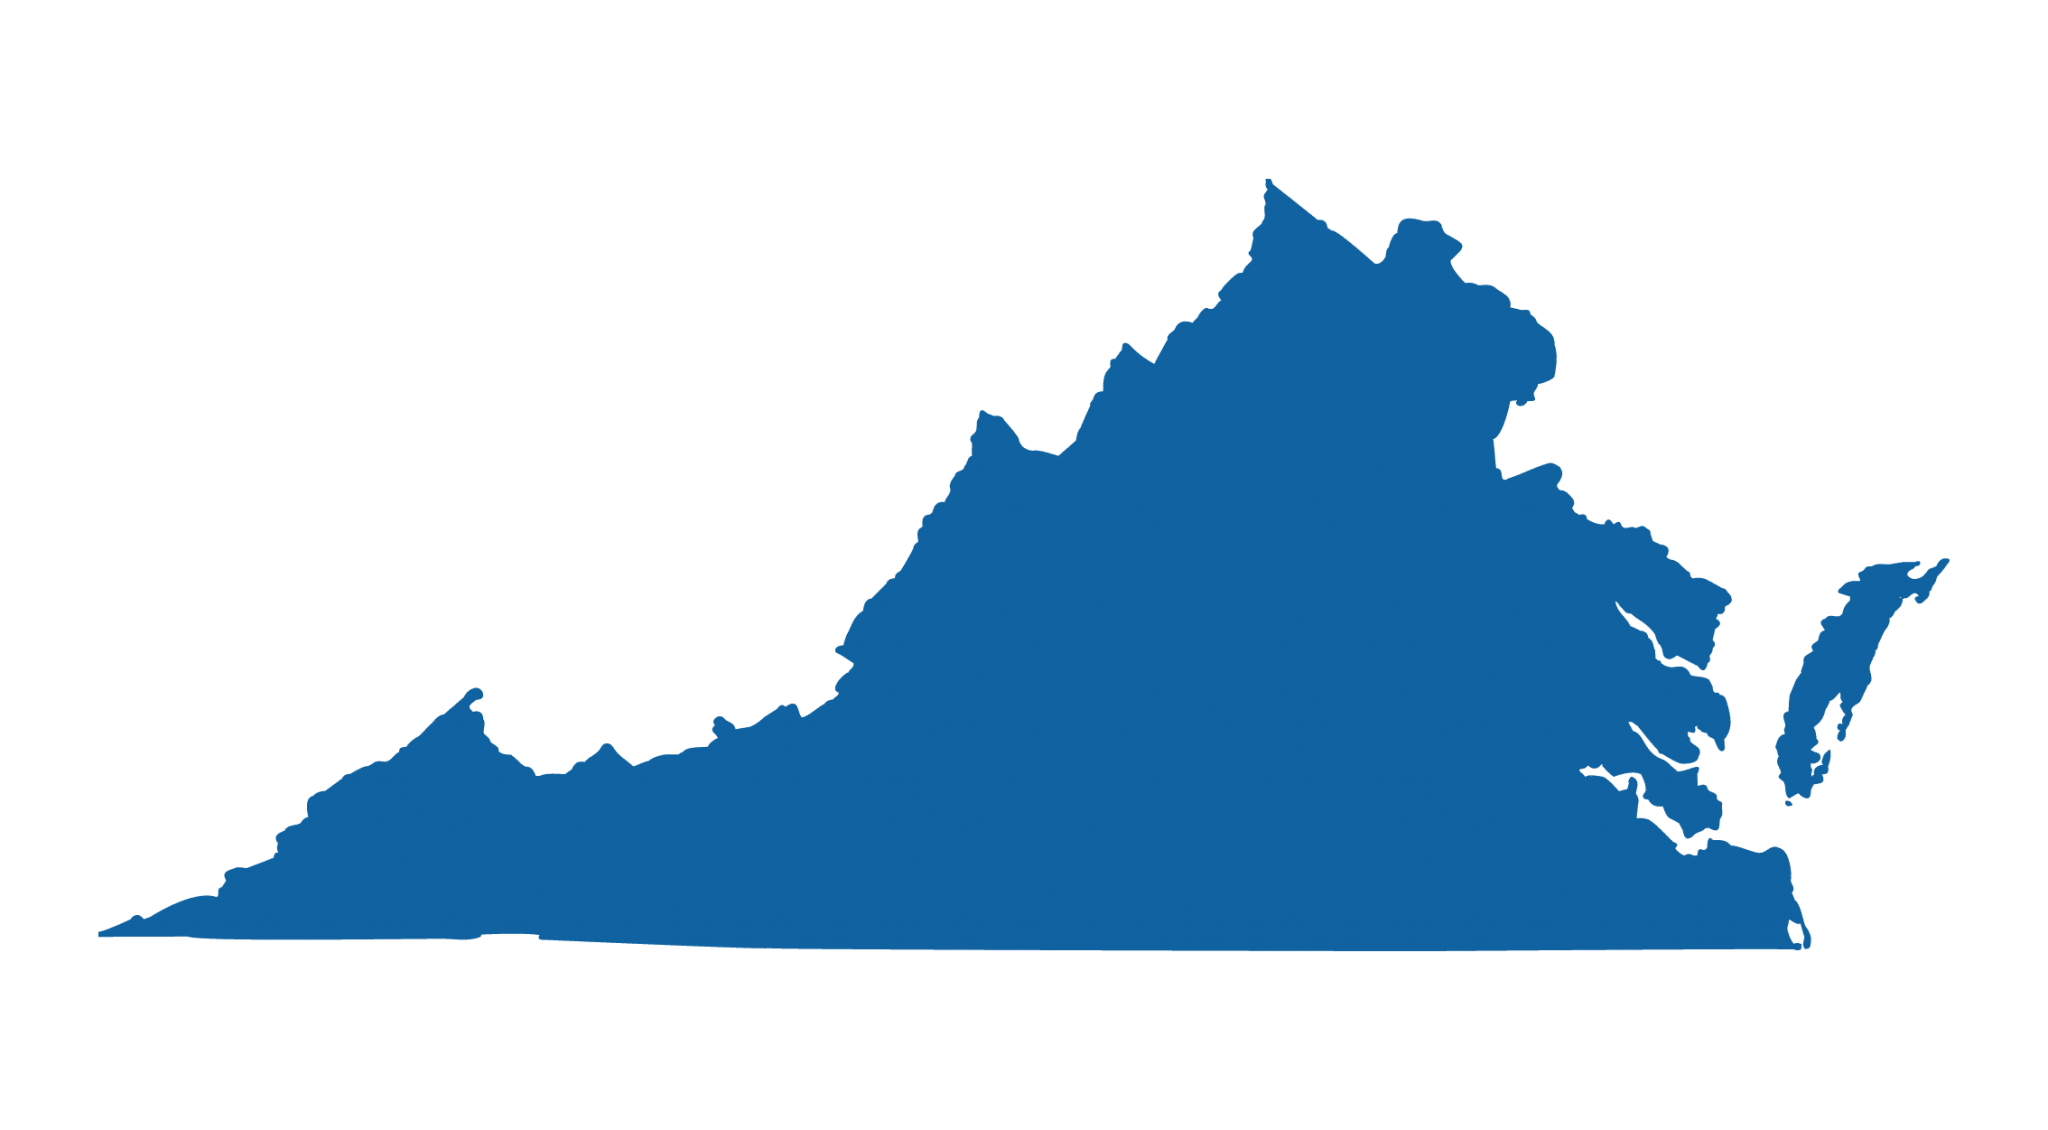 Outline of the state of Virginia colored blue